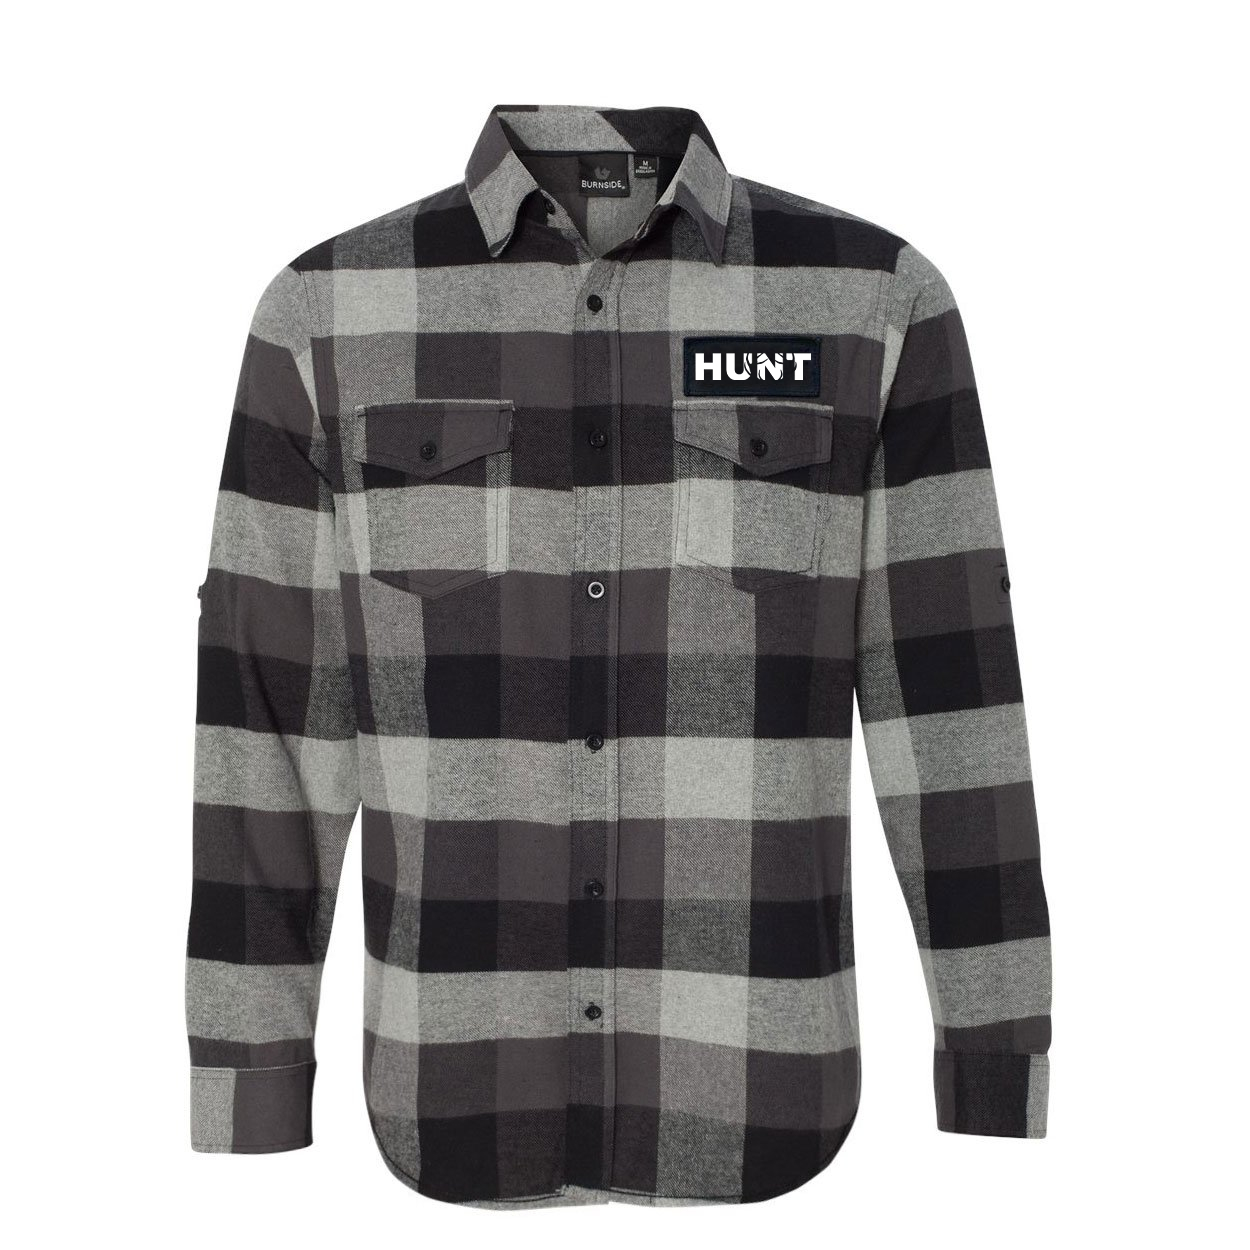 Hunt Rack Logo Classic Unisex Long Sleeve Woven Patch Flannel Shirt Black/Gray (White Logo)